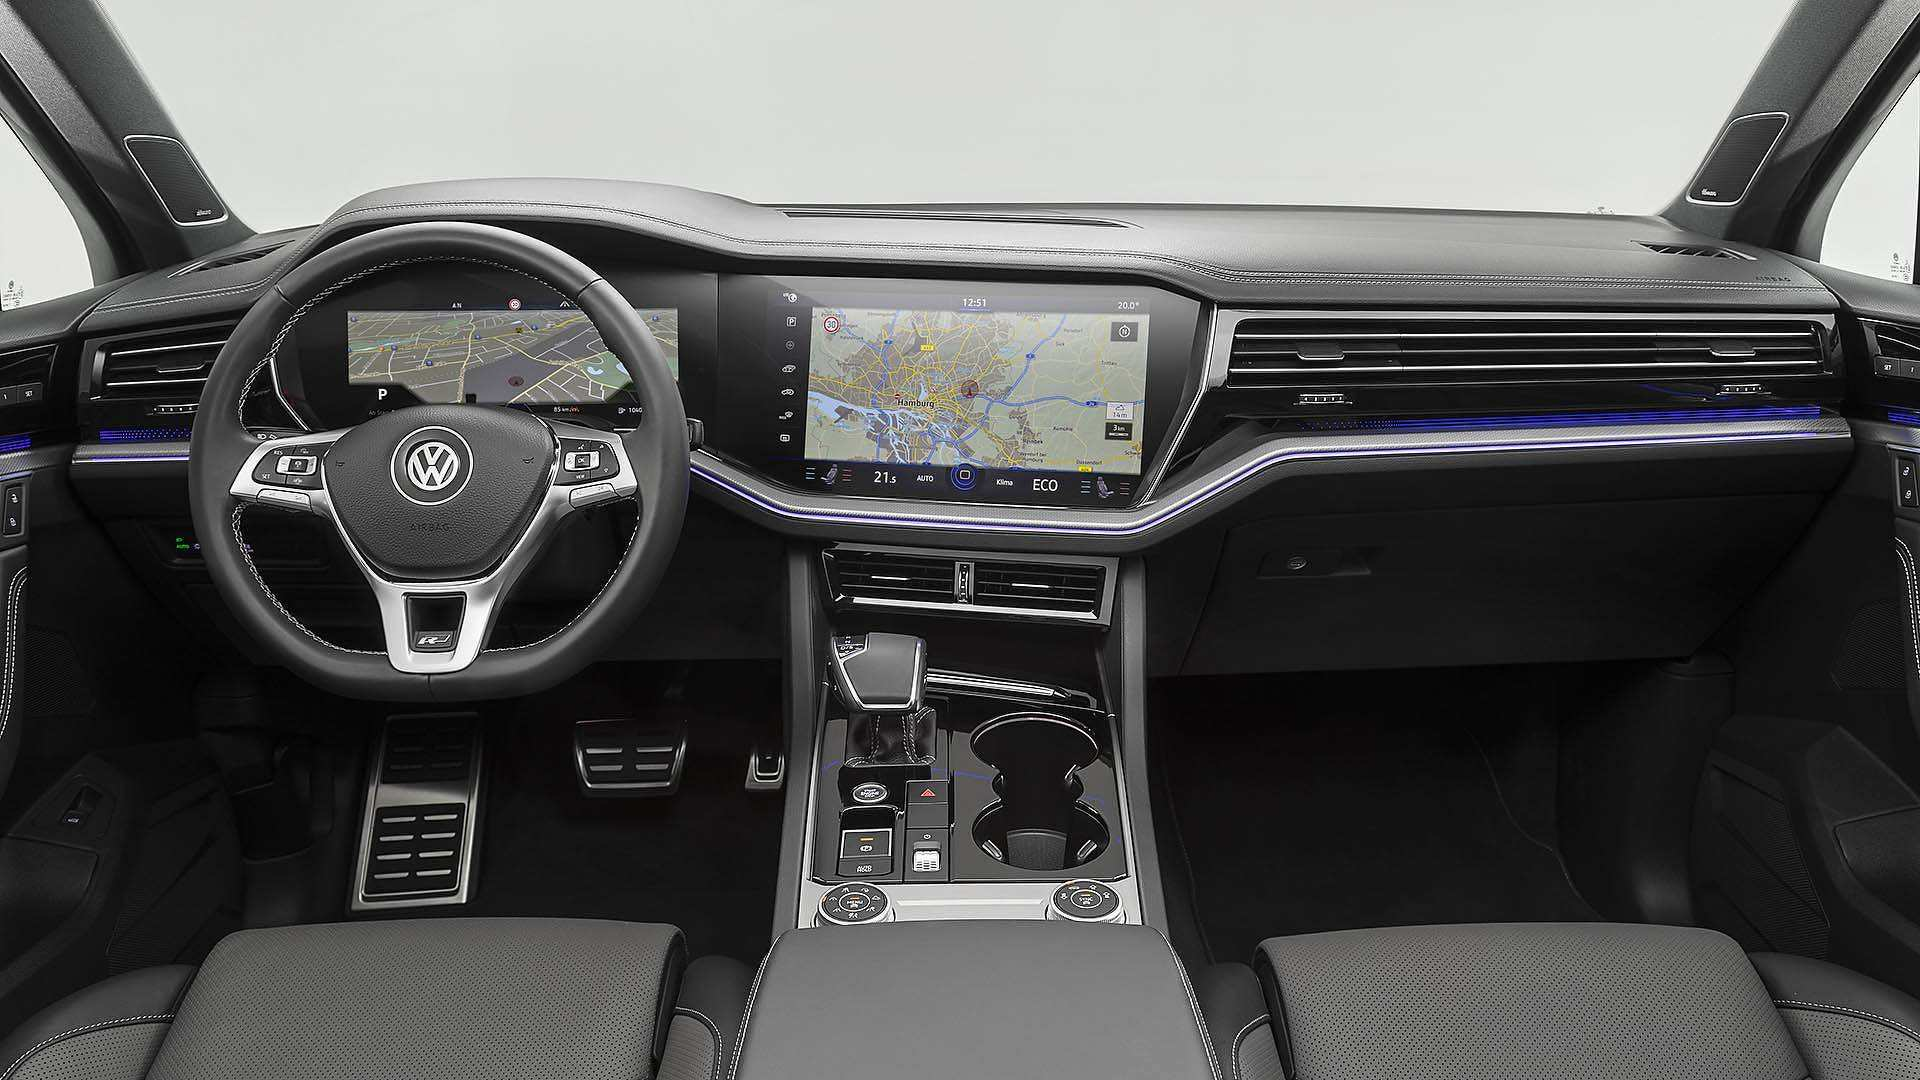 48 All New Vw Touareg 2019 Interior Release